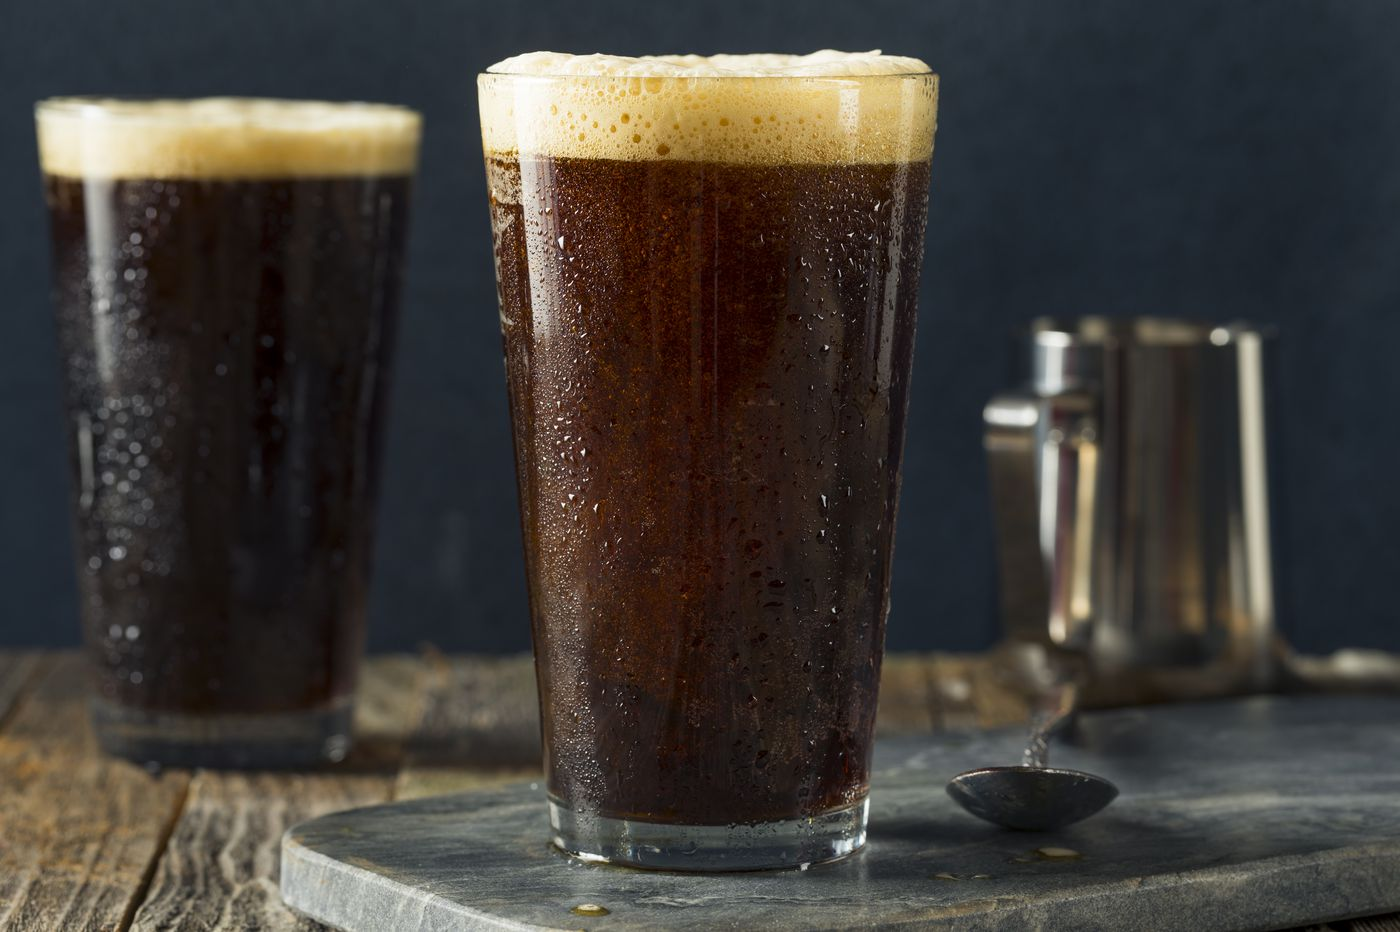 Rethink that cold brew. Hot coffee might be better for your health.